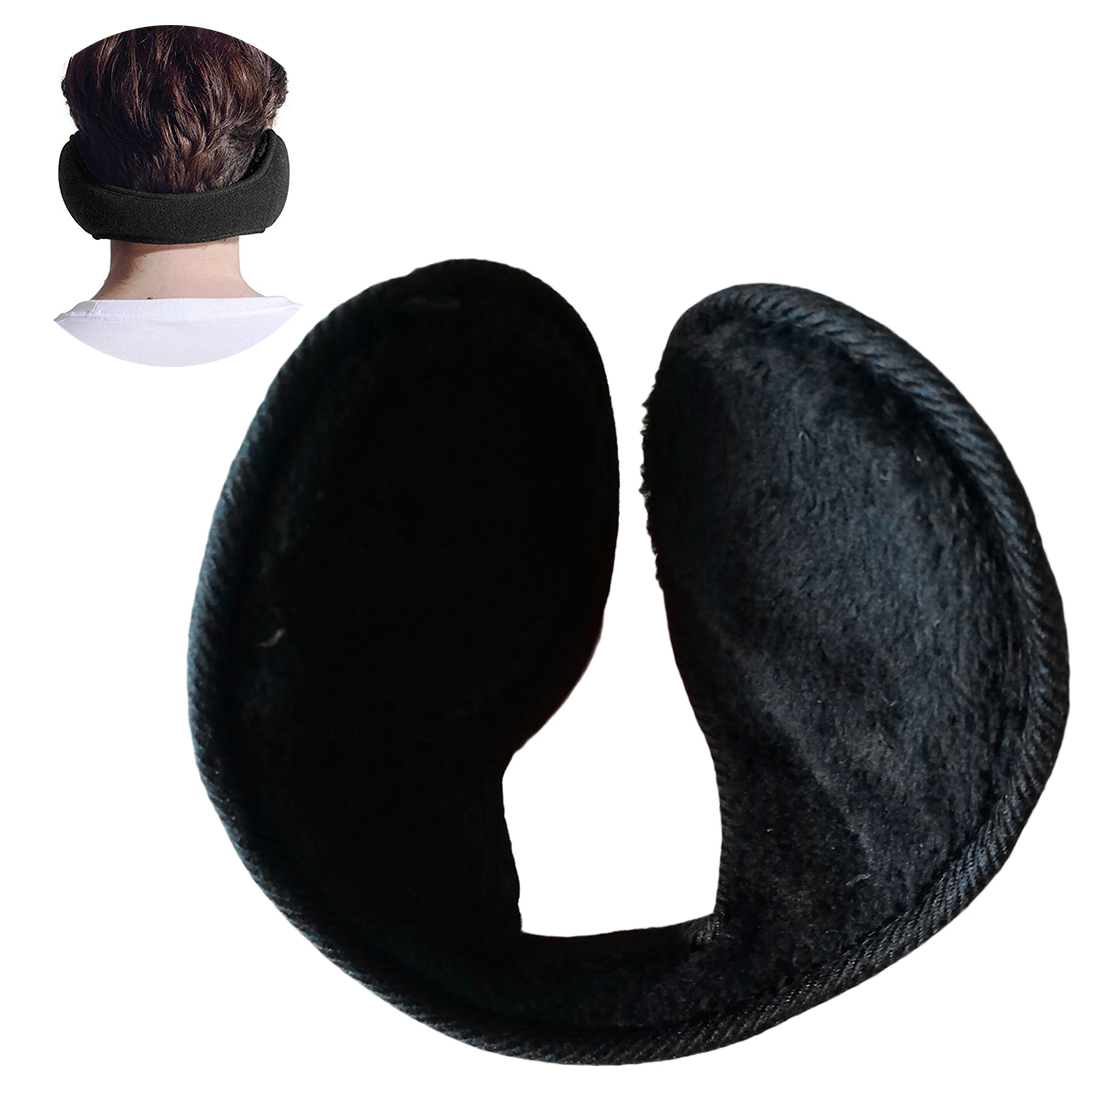 Unisex Earmuffs Black Ear Muffs Fleece Earwarmer Winter Ear Warmers Mens Womens Behind The Head Design